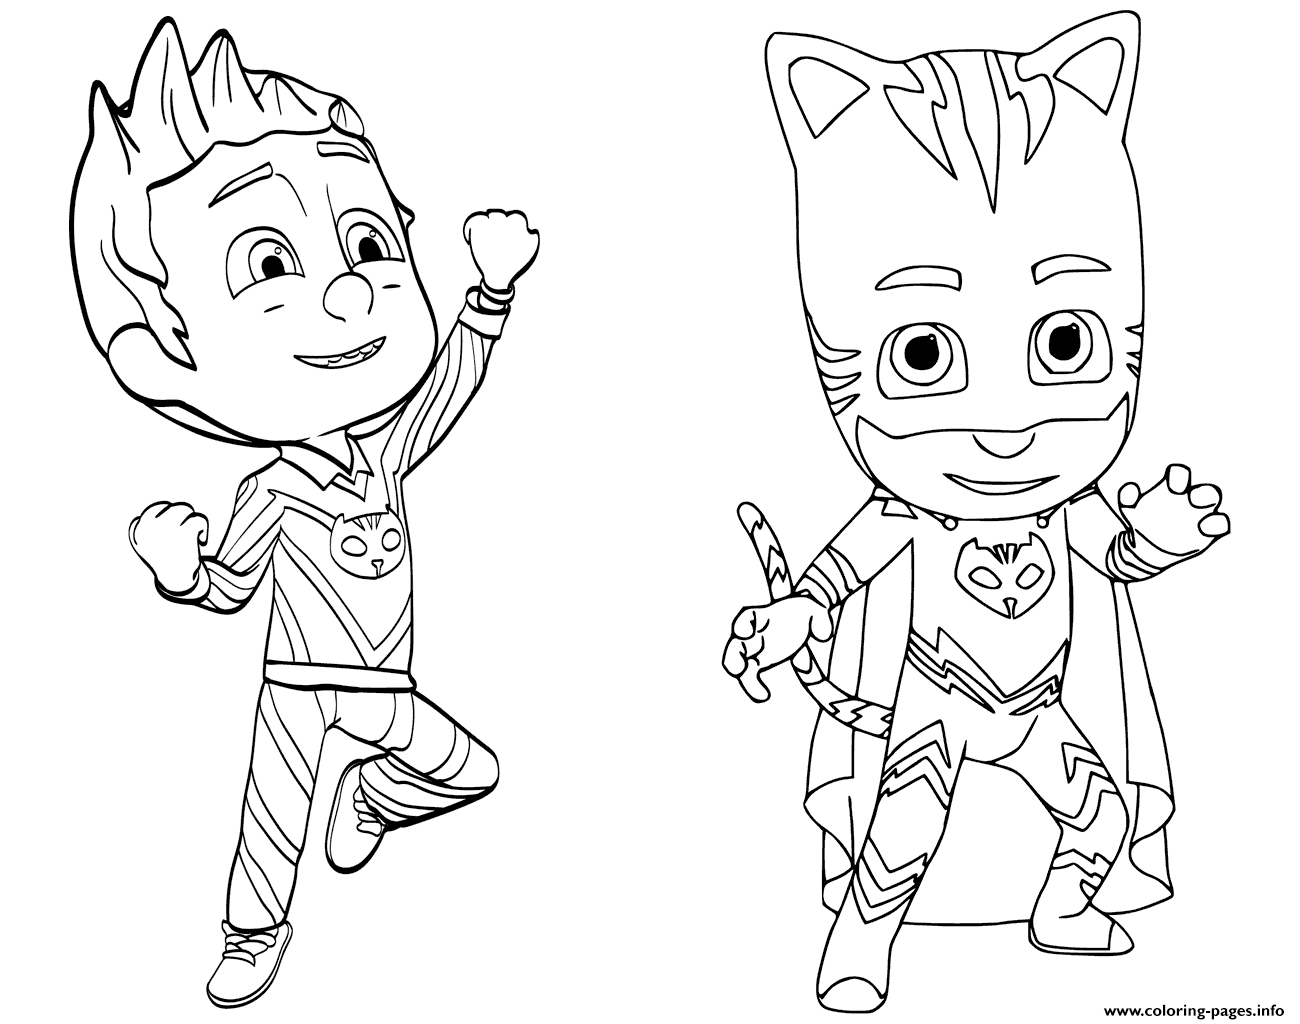 - Pajama Hero Connor Is Catboy From PJ Masks Coloring Pages Printable